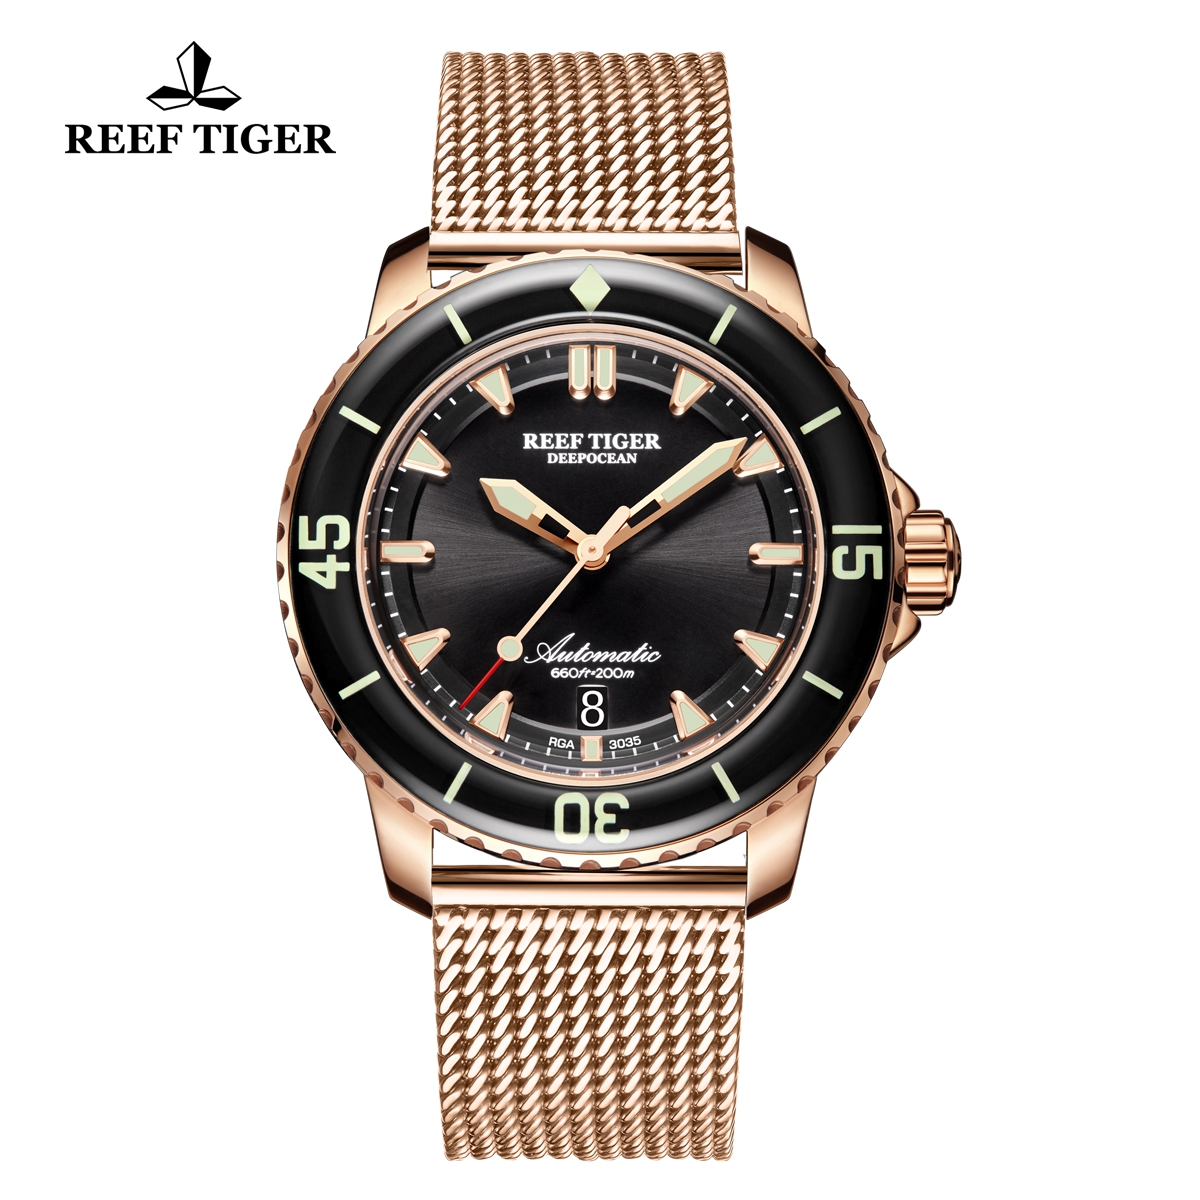 Reef Tiger Deep Ocean Casual Watches Automatic Watch Rose Gold Case Black Dial RGA3035-PBP